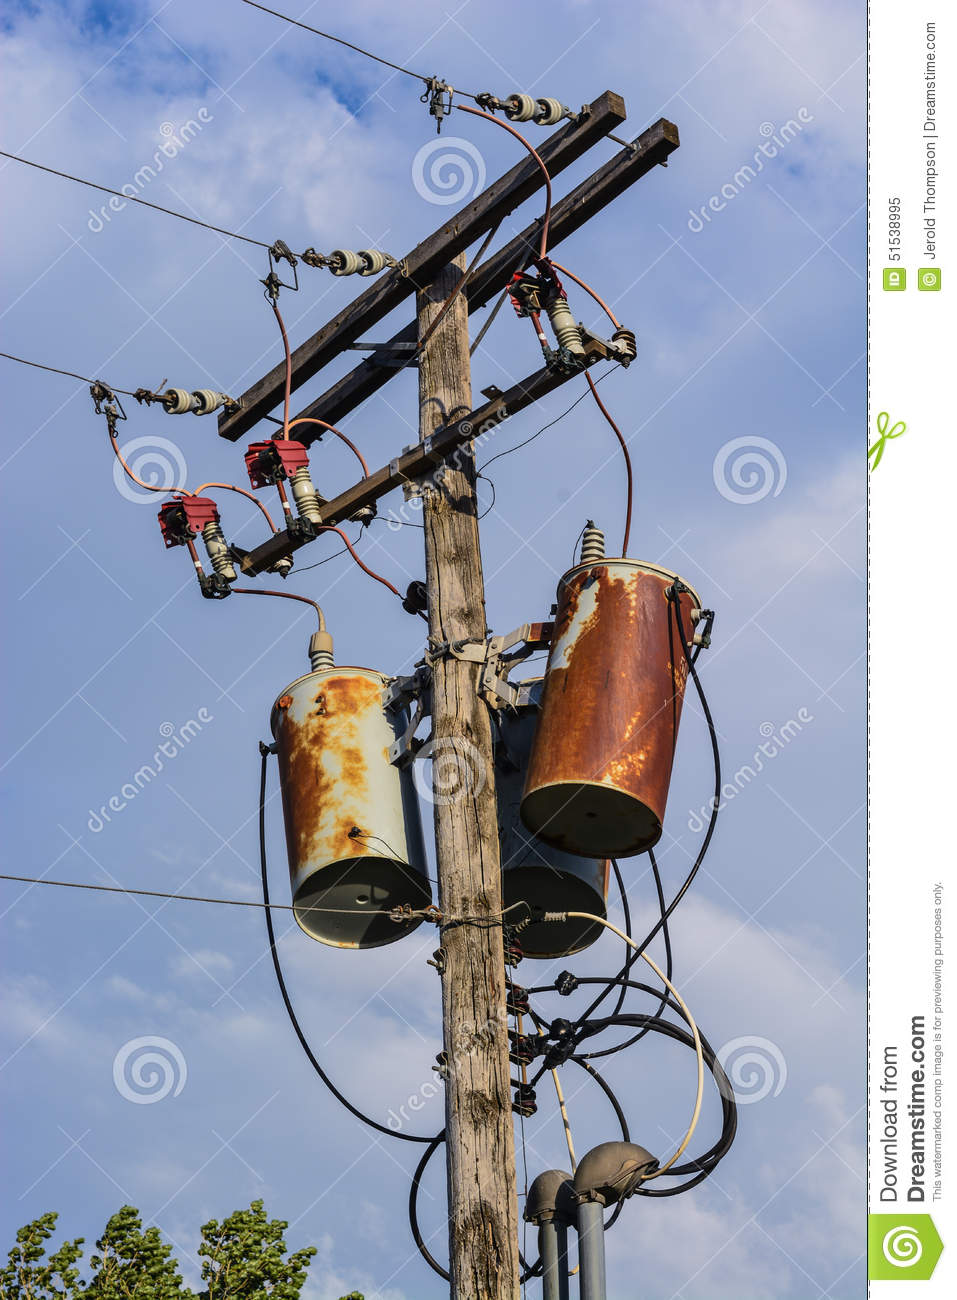 old power pole wood rusty transformers wires insulators fuses entrance heads electrical distribution 51538995 old power pole stock image image of insulators, wood 51538995